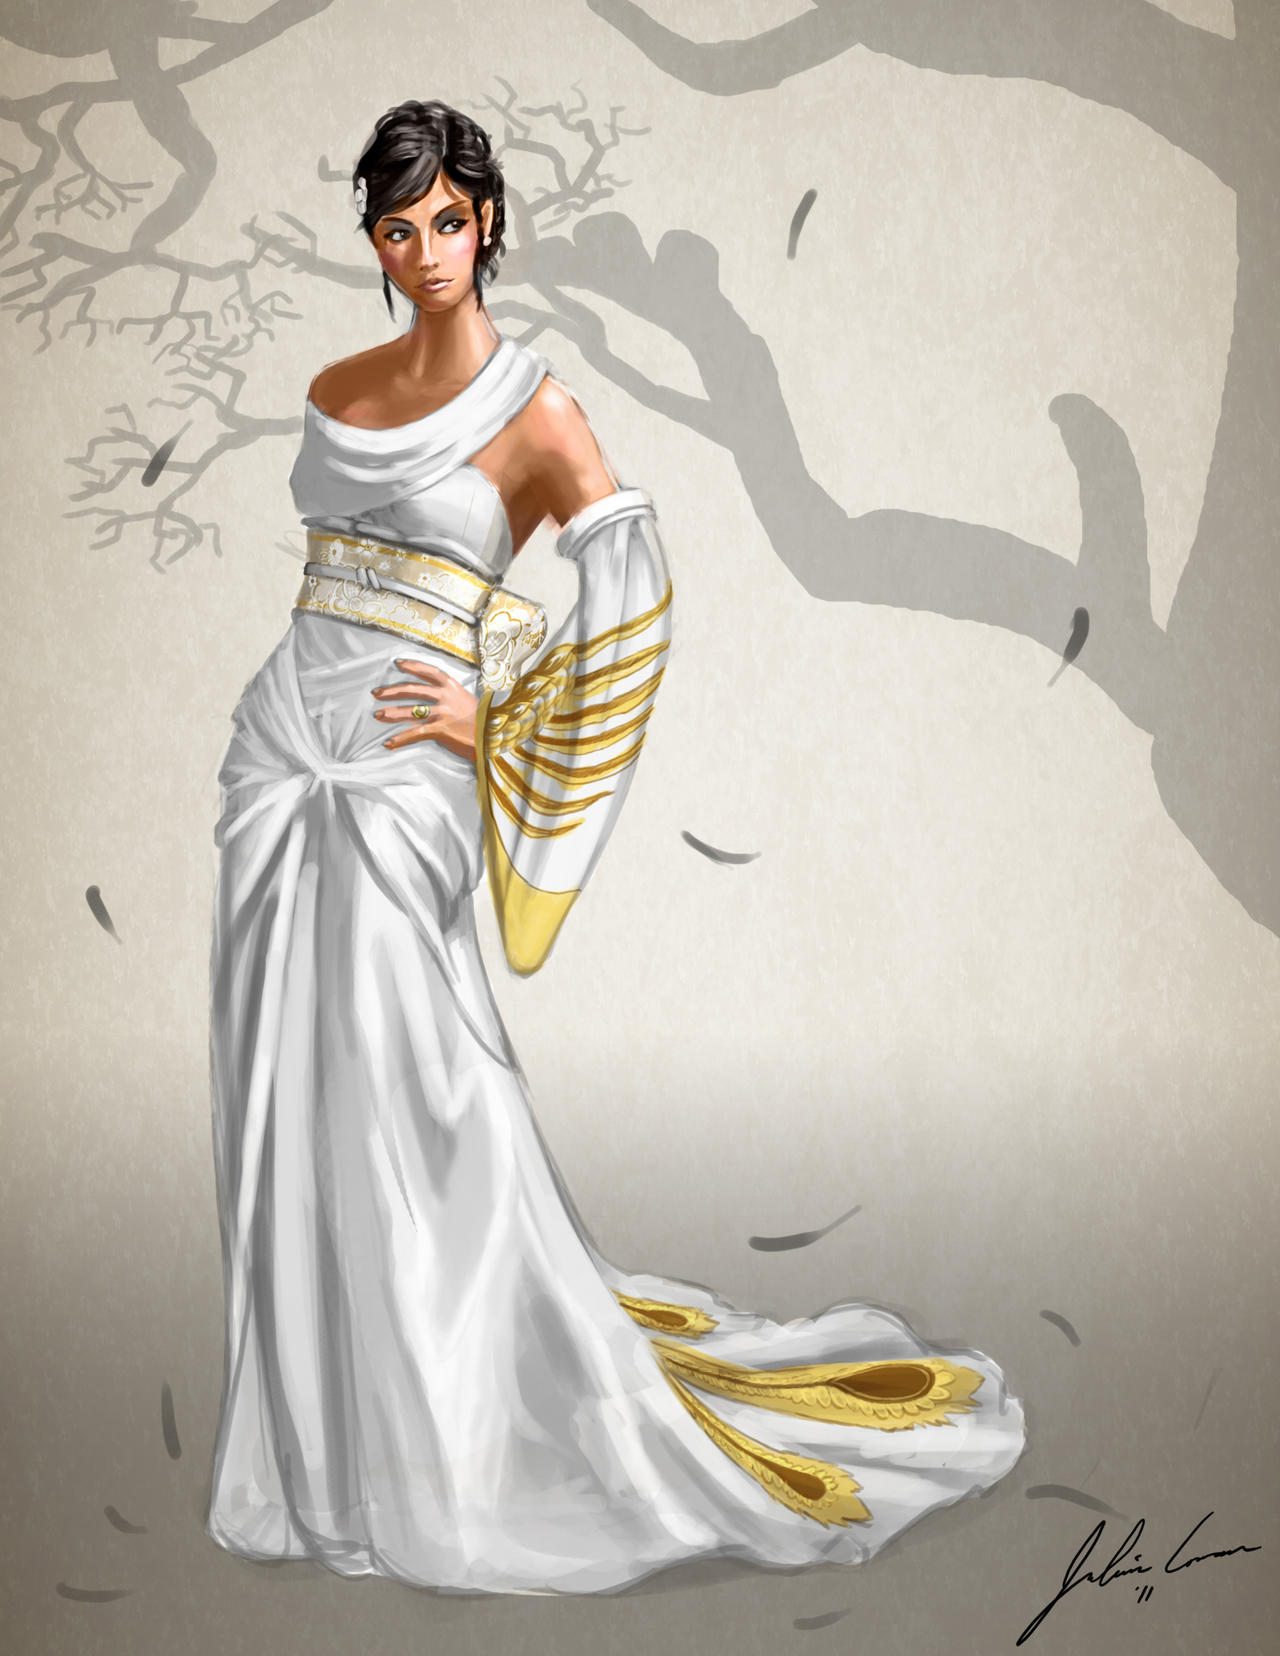 Wedding Gown Design - Front by JECBrush on DeviantArt